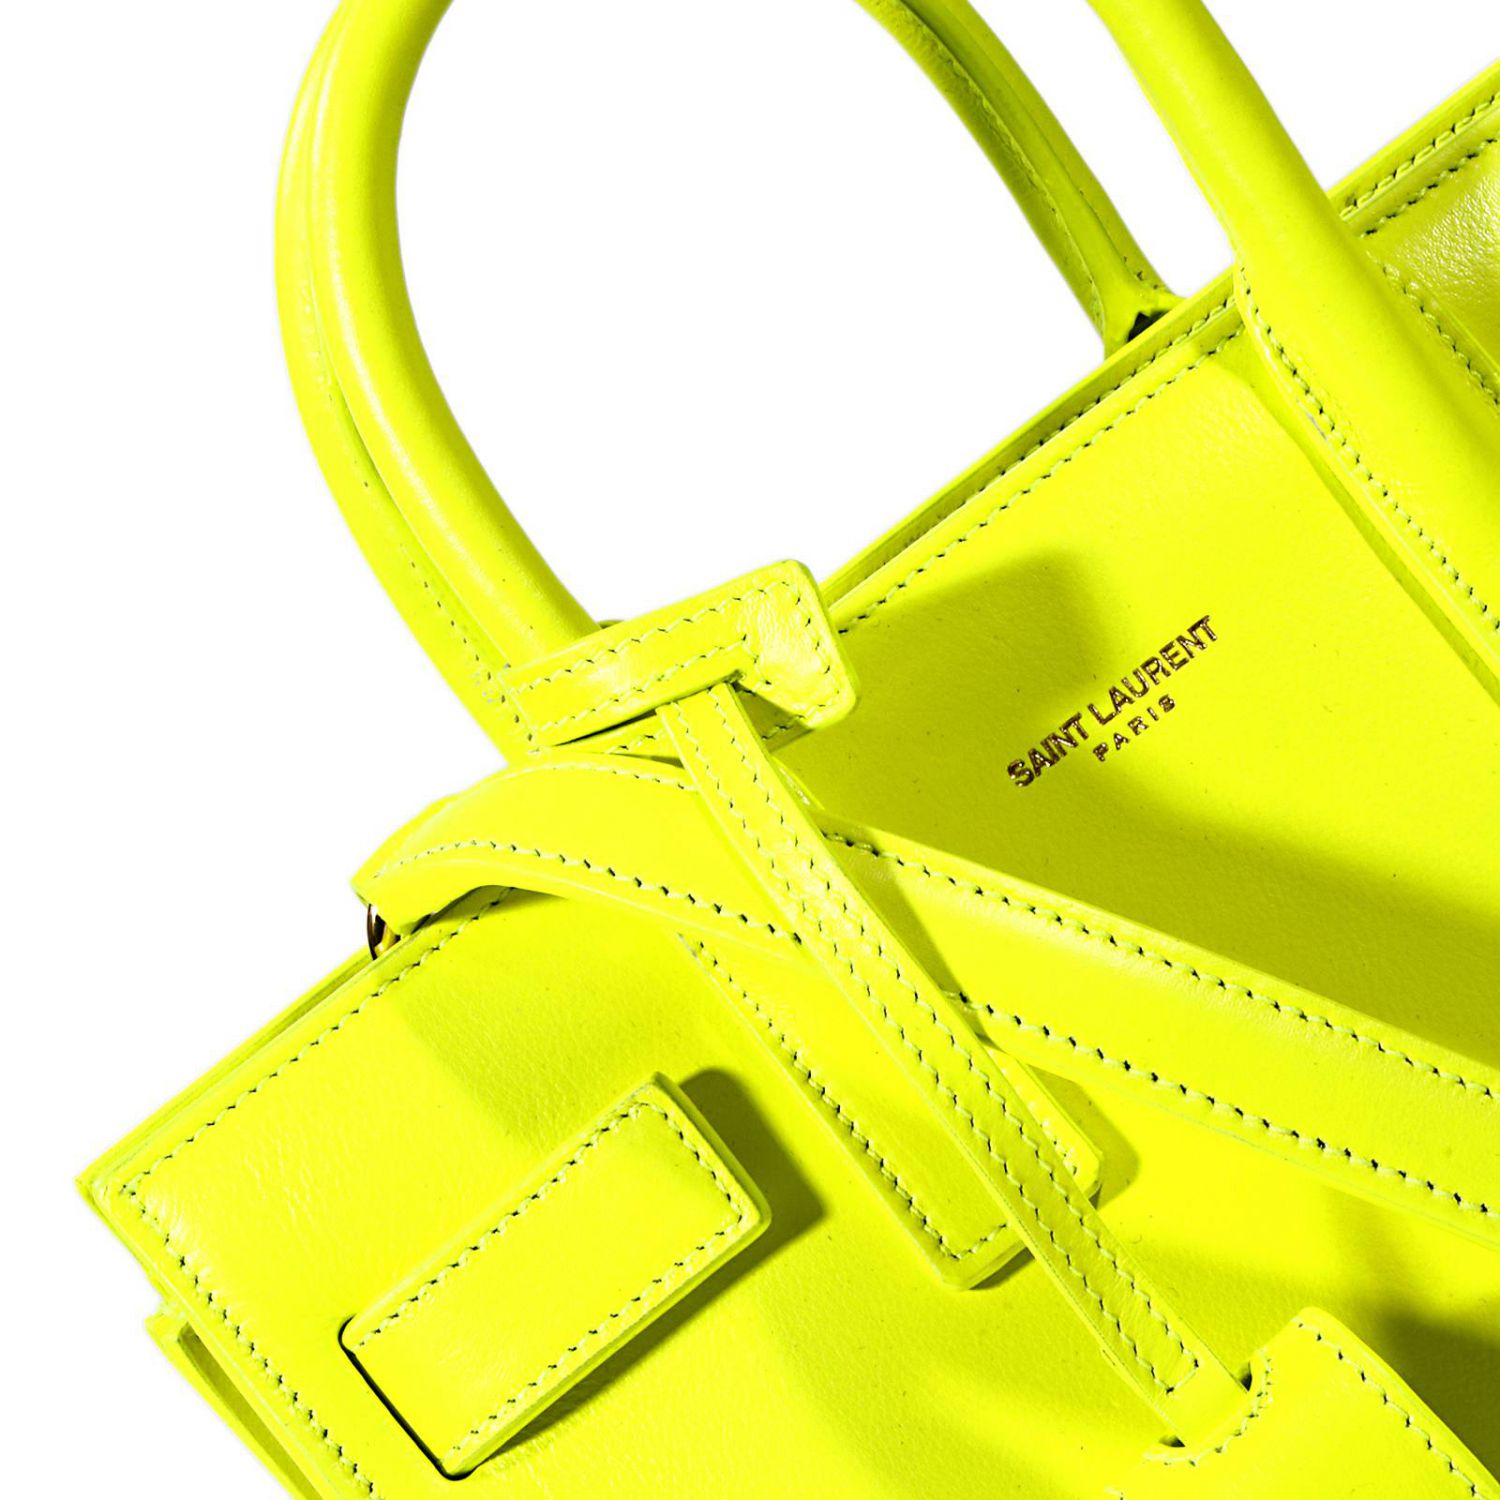 ysl new collection bags - classic baby sac de jour bag in yellow leather